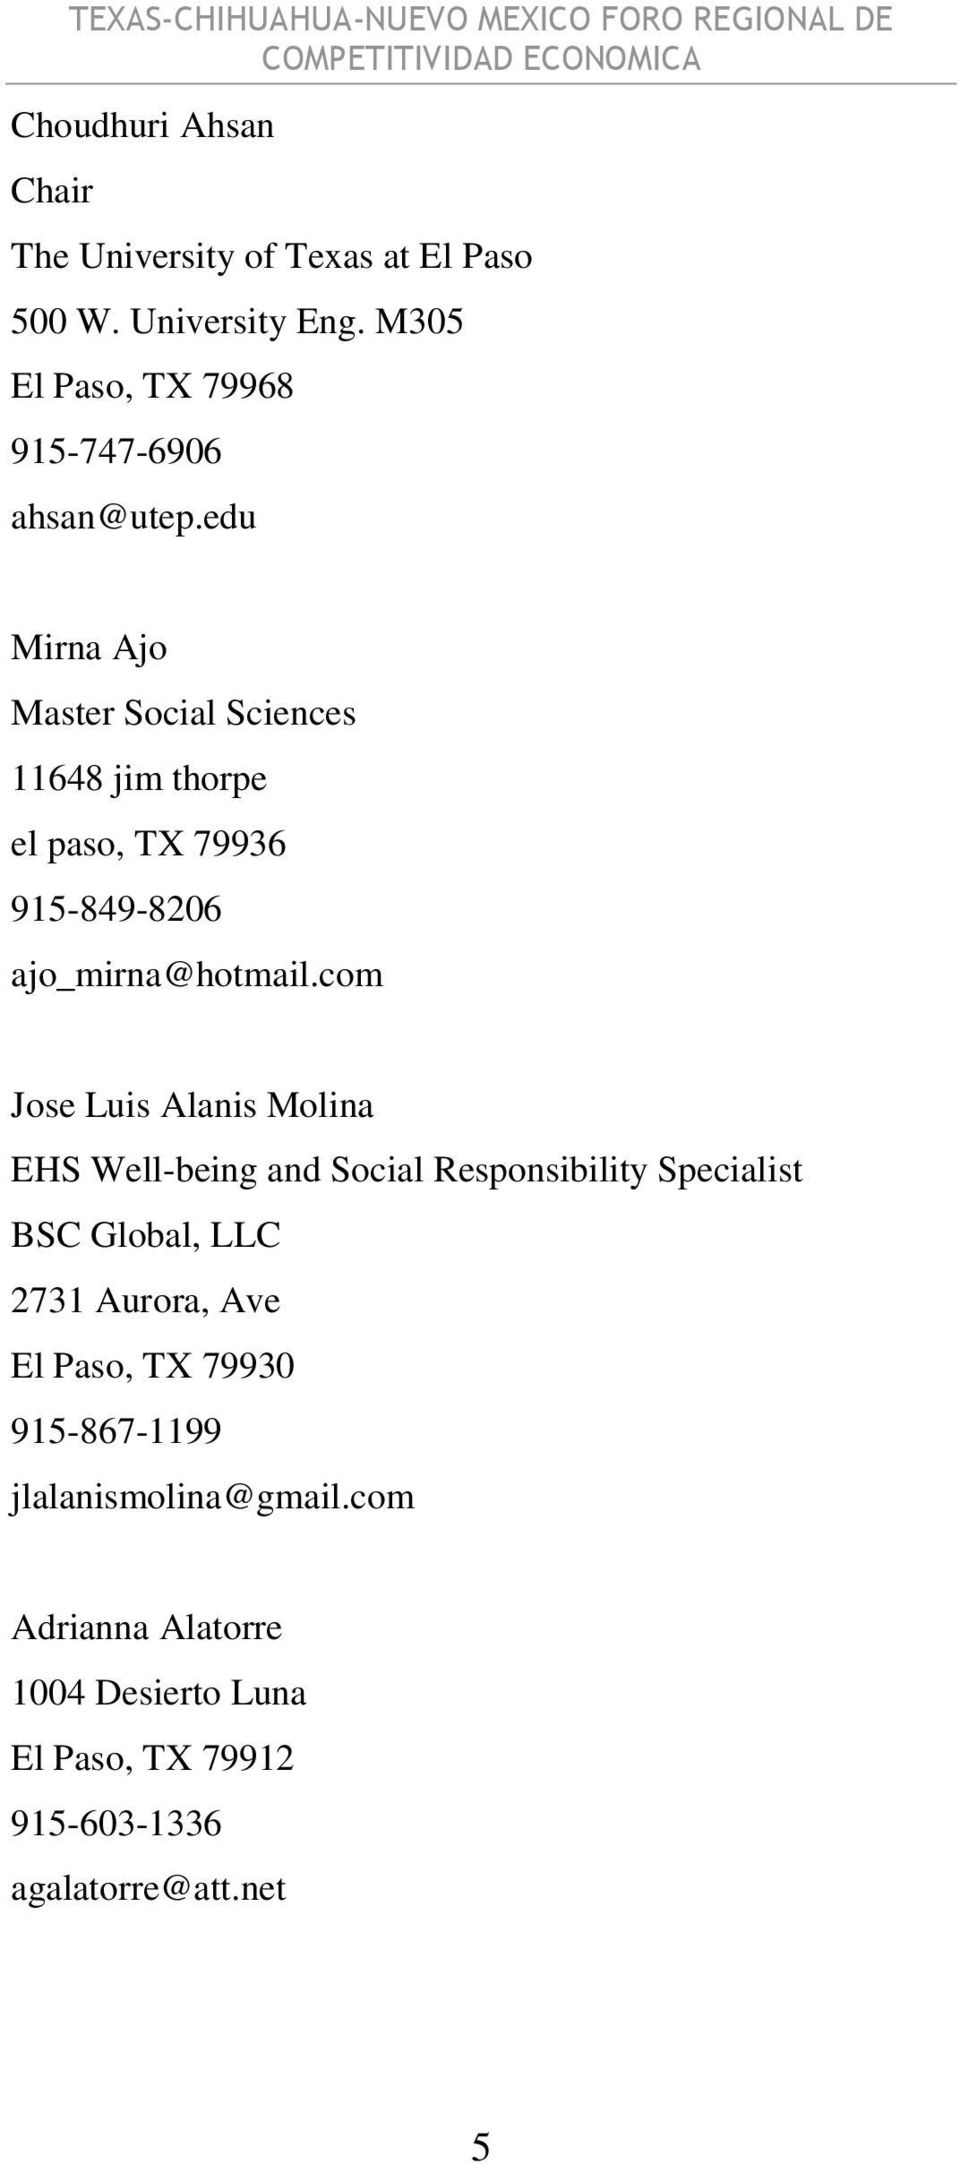 edu Mirna Ajo Master Social Sciences 11648 jim thorpe el paso, TX 79936 915-849-8206 ajo_mirna@hotmail.